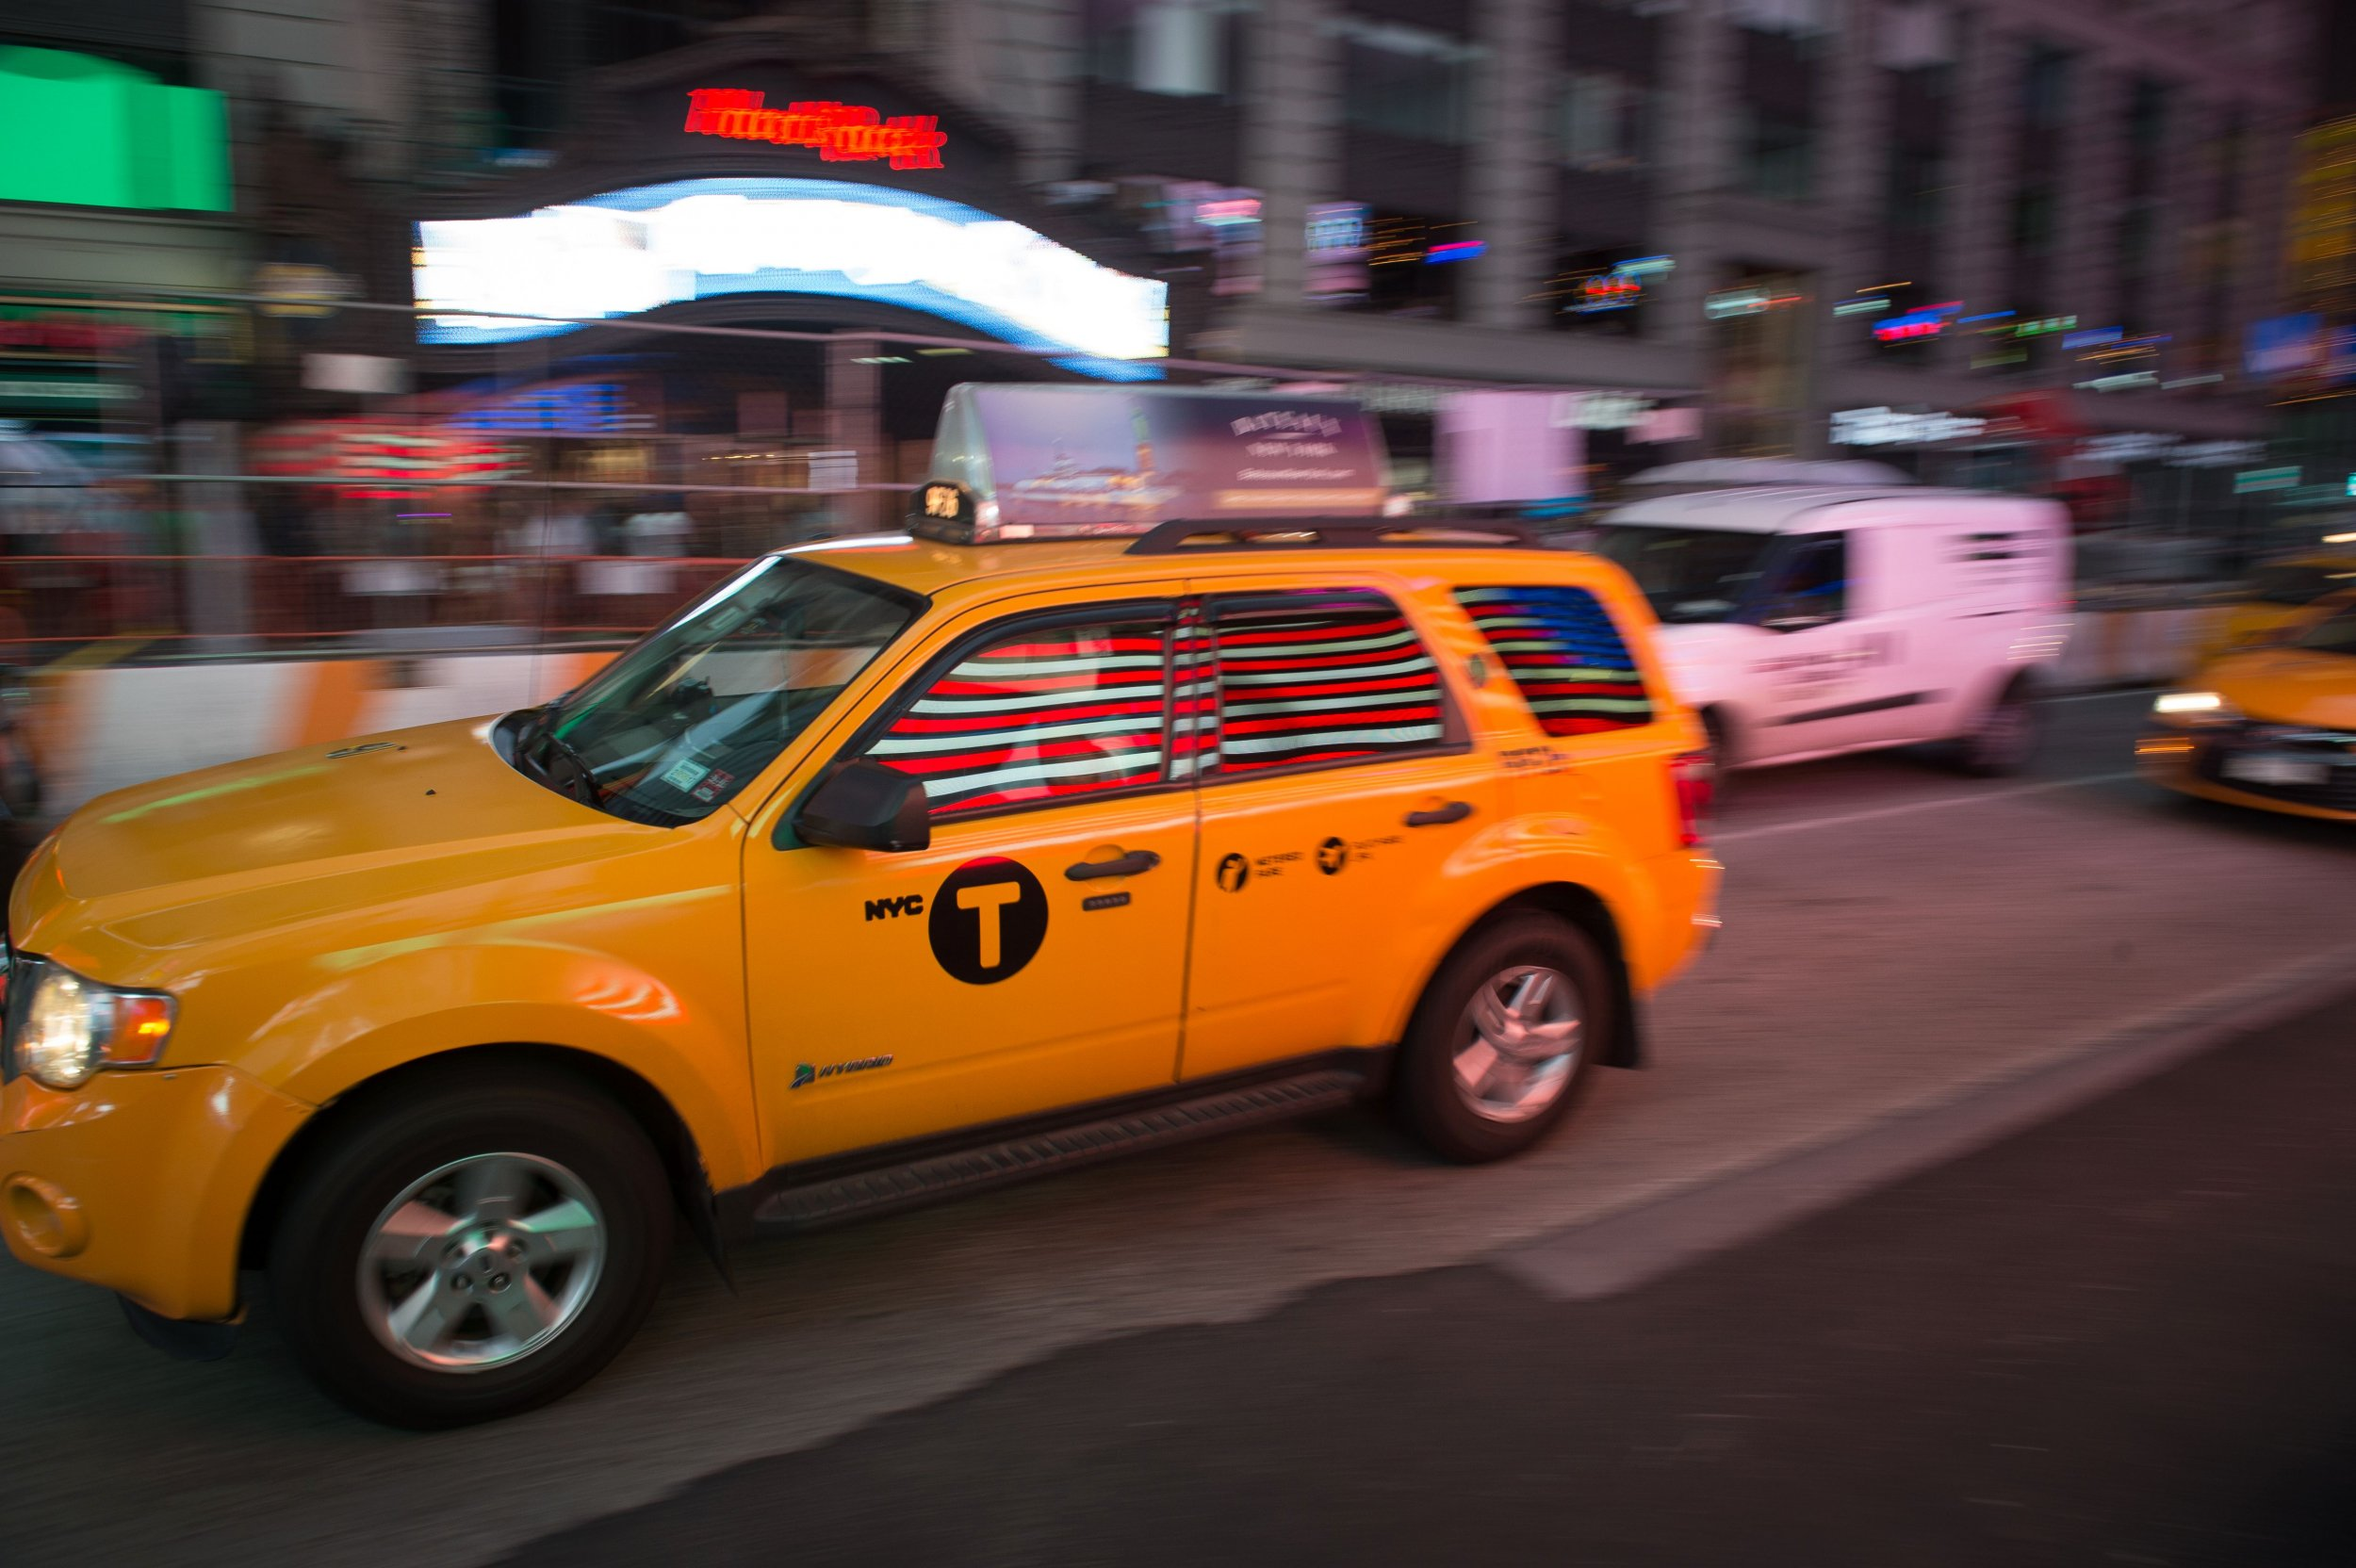 Car Financial Services >> NYC Taxi Drivers Are Killing Themselves, and Some Blame Uber and Lyft